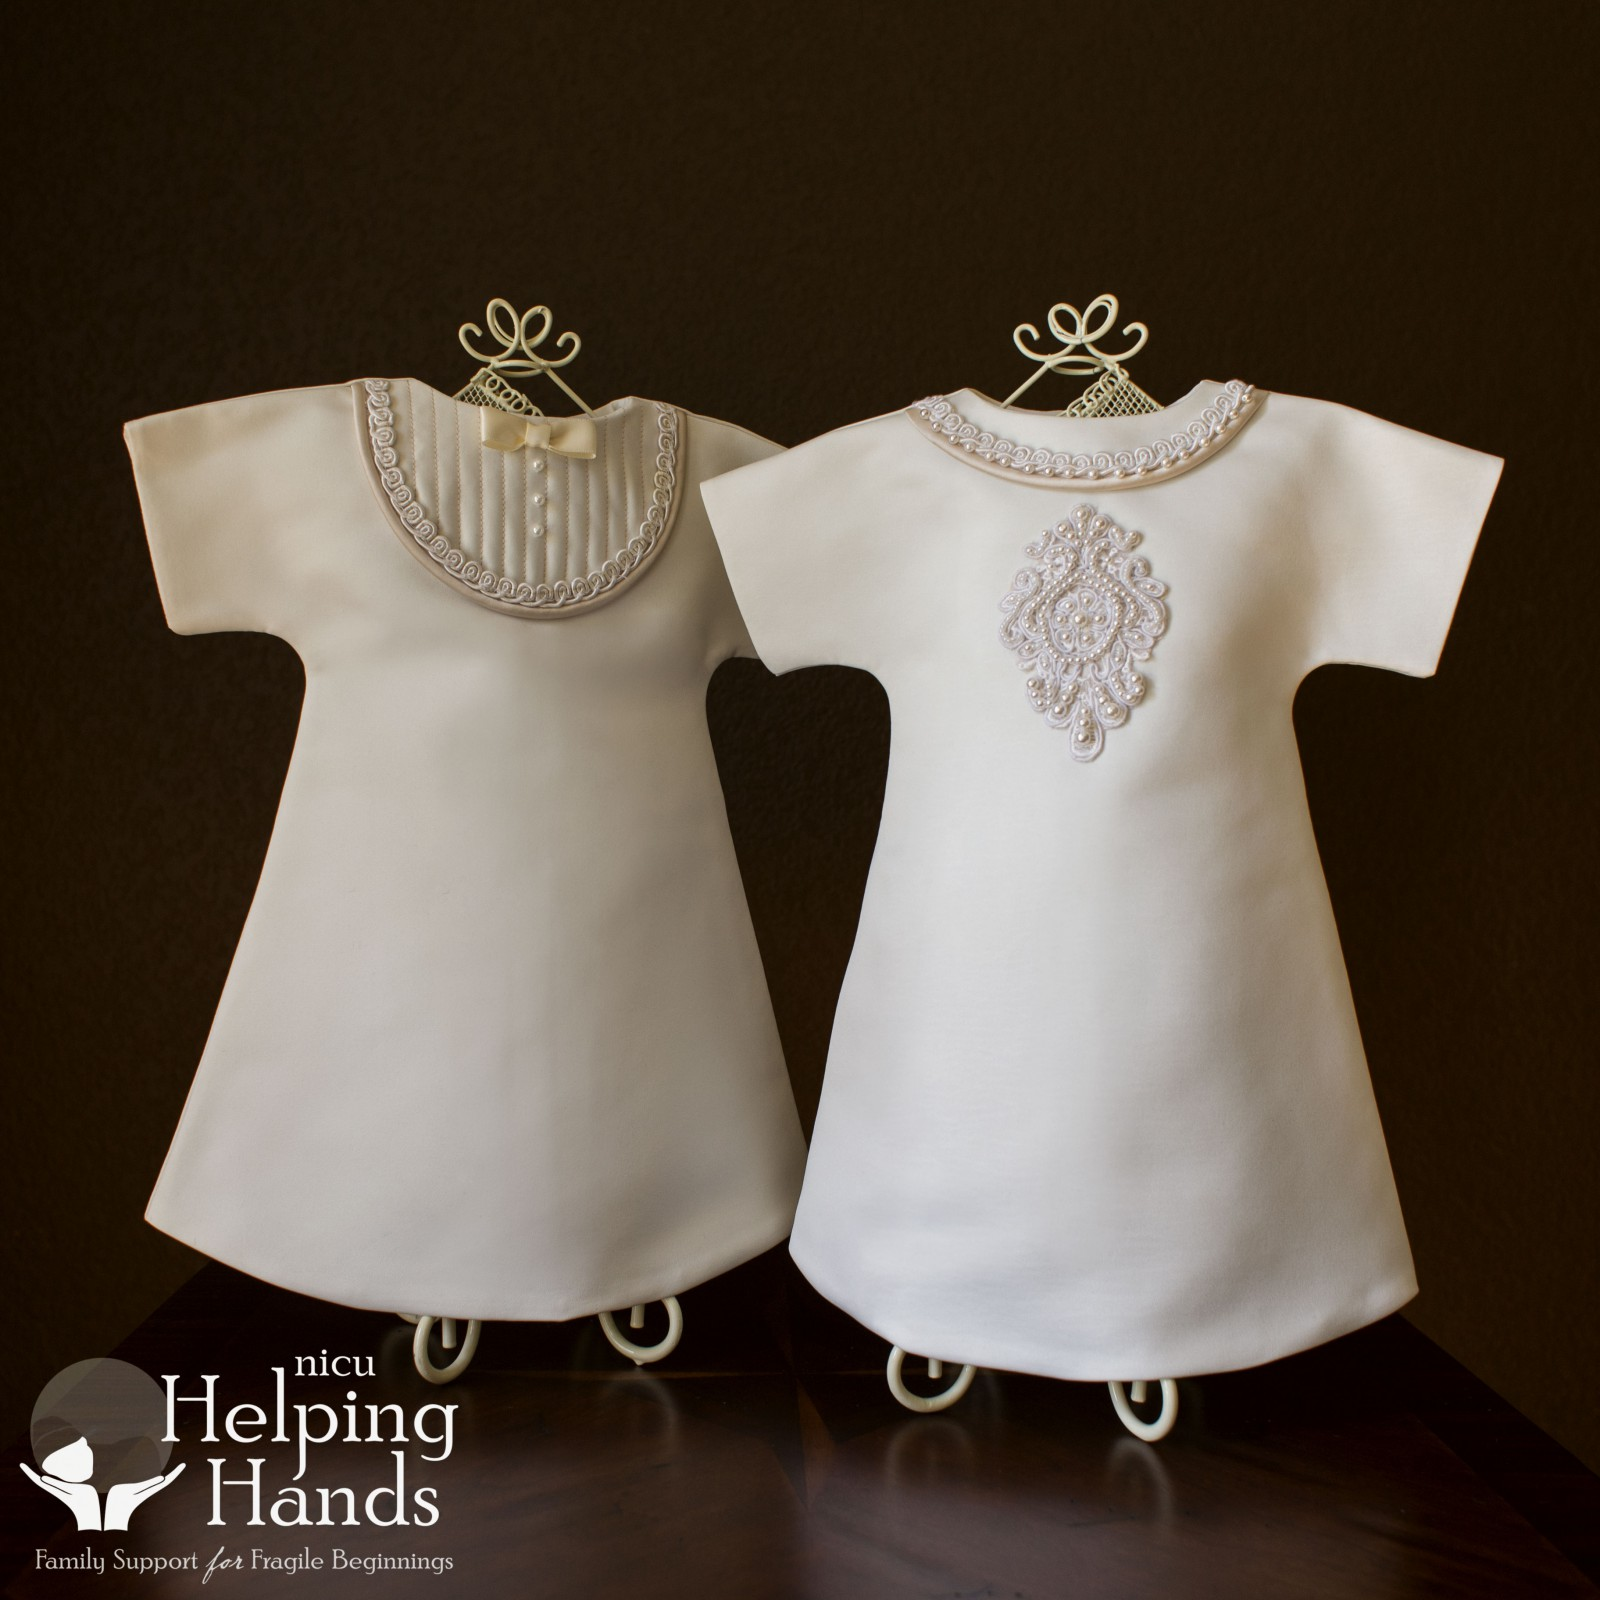 The Angel Gown Program Nicu Helping Hands